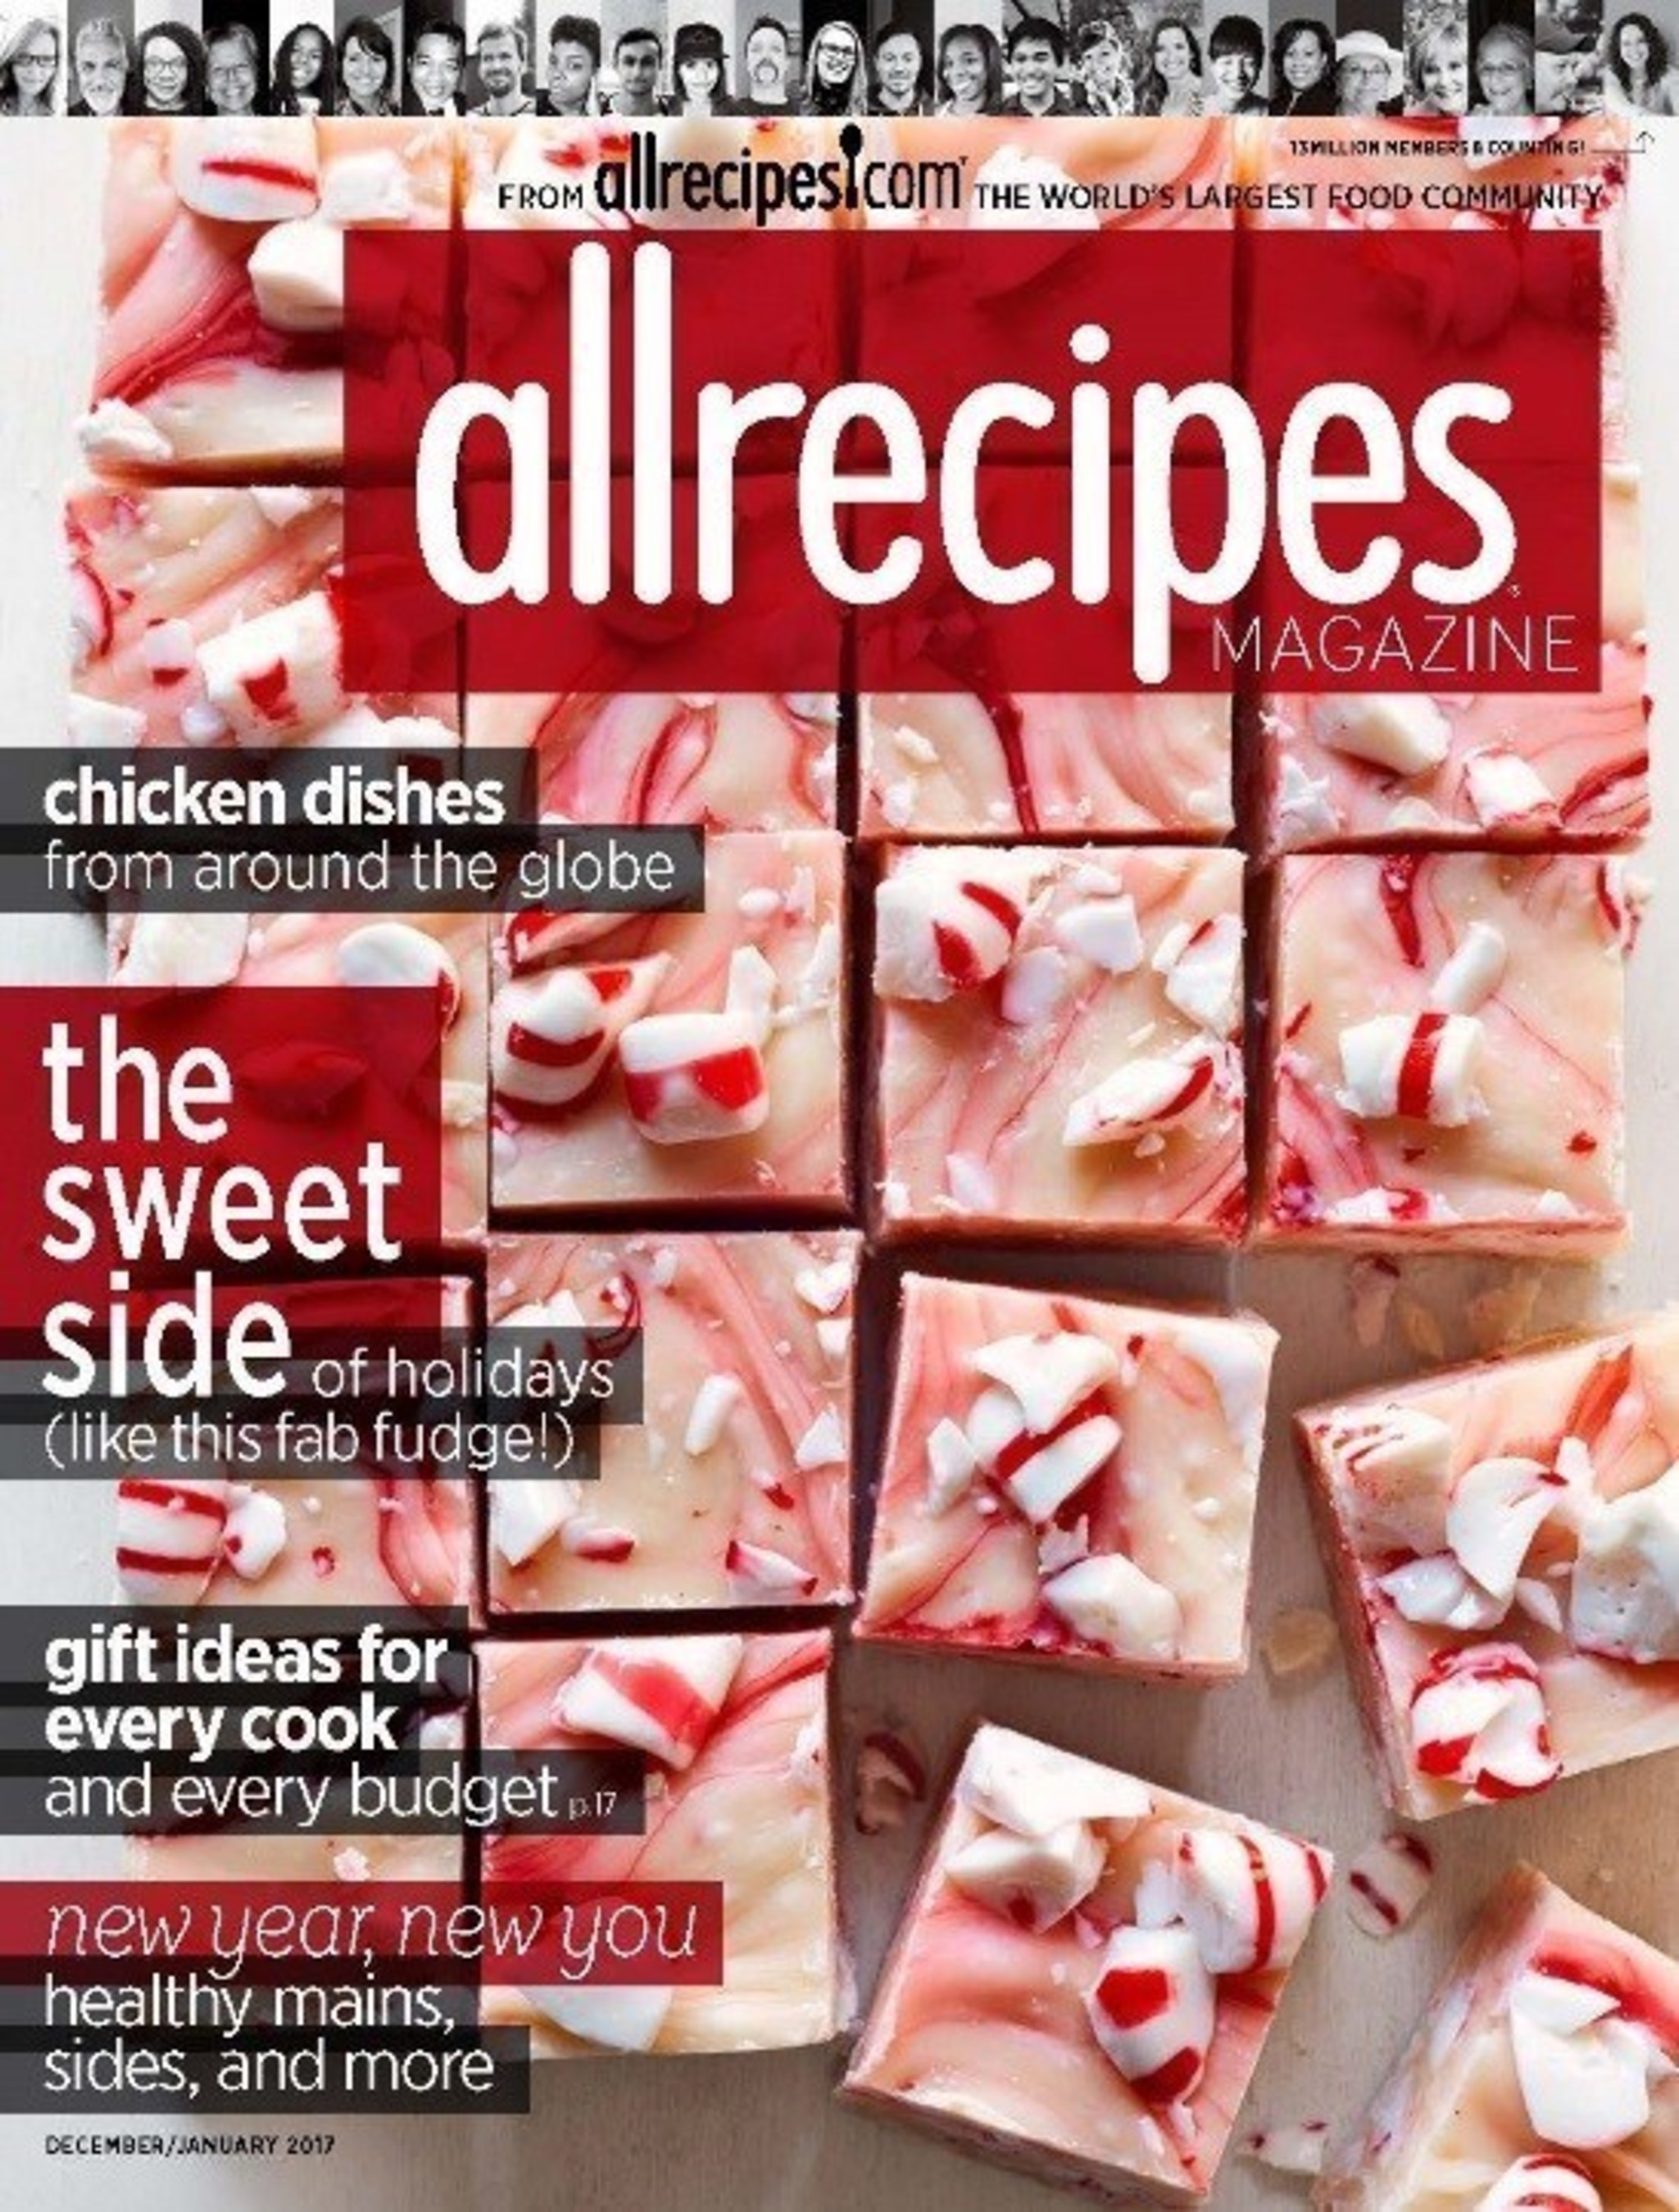 Allrecipes Magazine's December/January 2017 Issue Is The Largest To Date